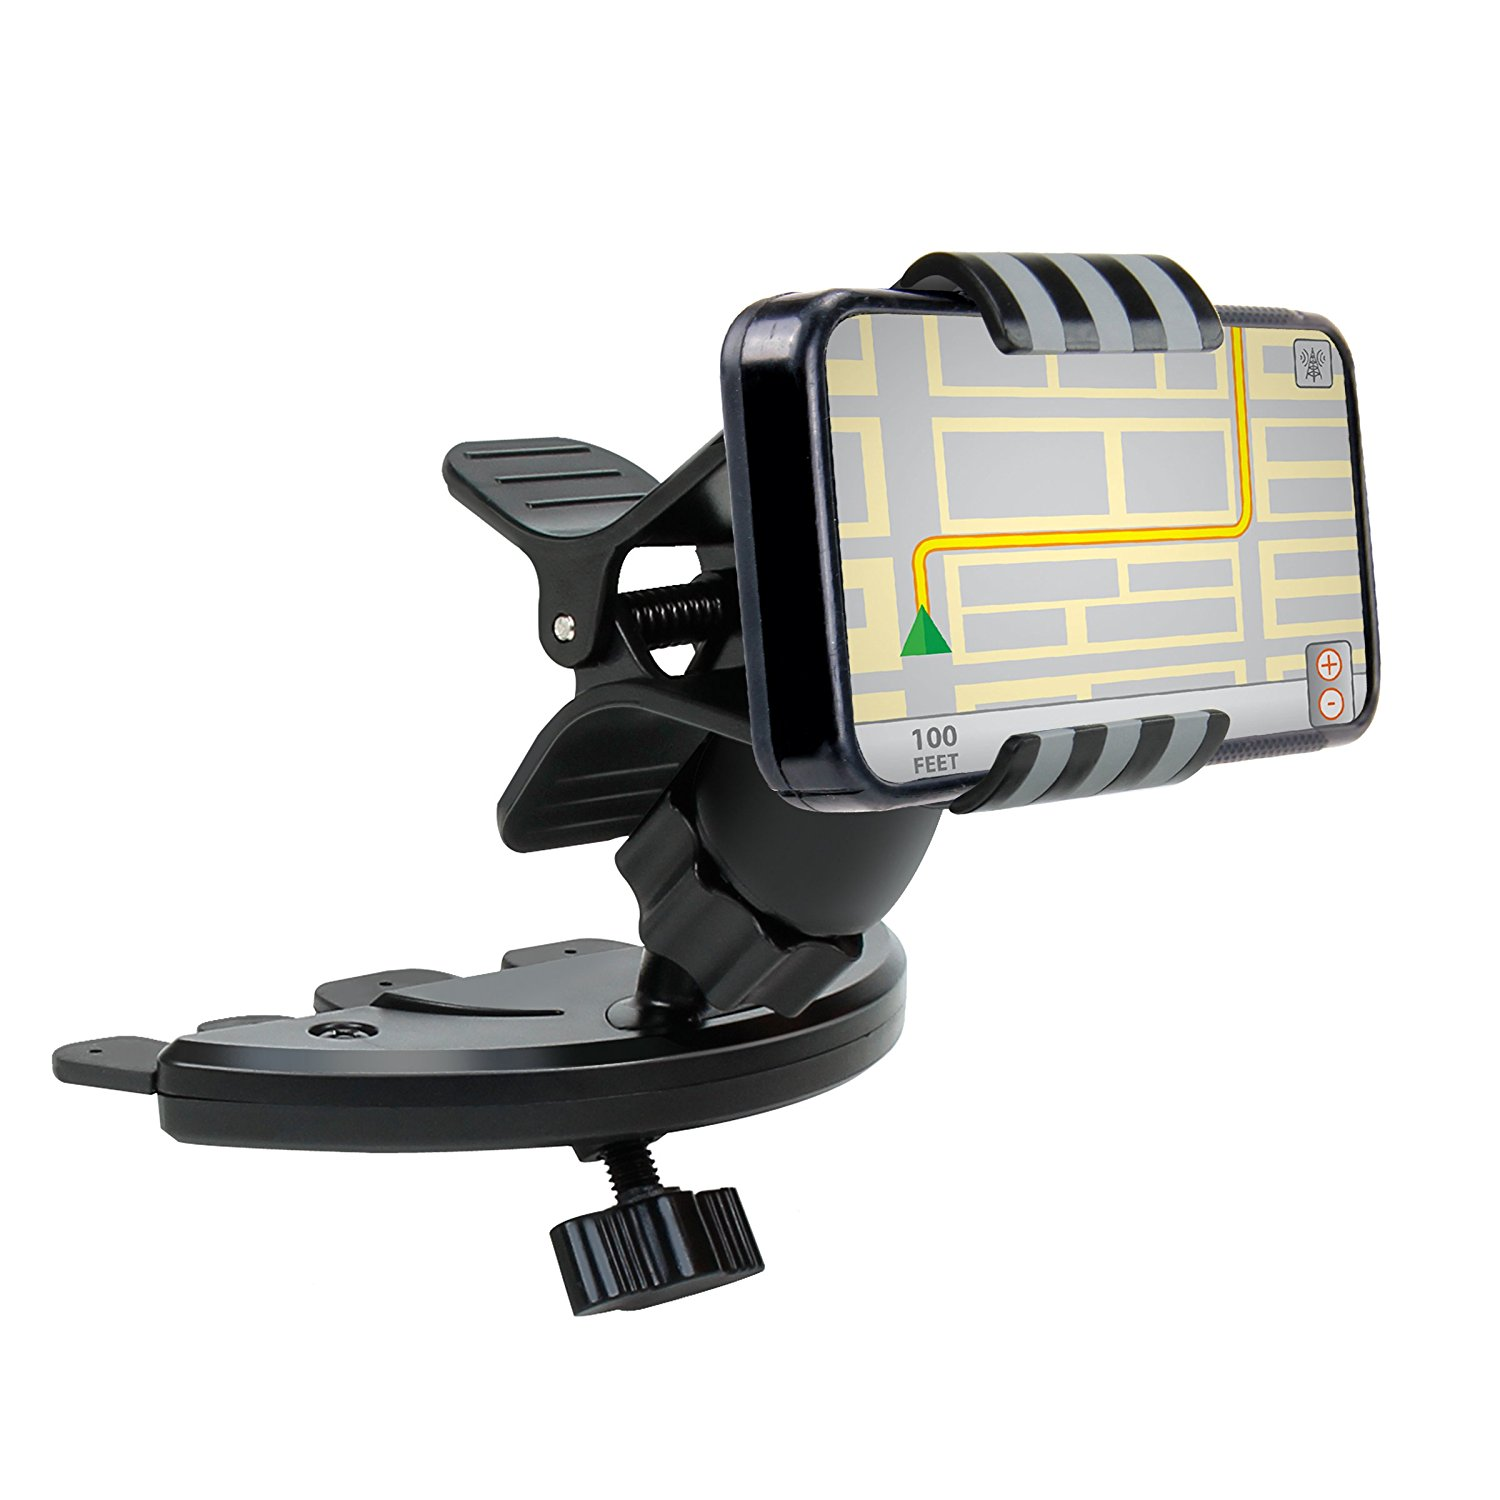 USA Gear Universal CD Slot Car Mount Holder with Rotating...